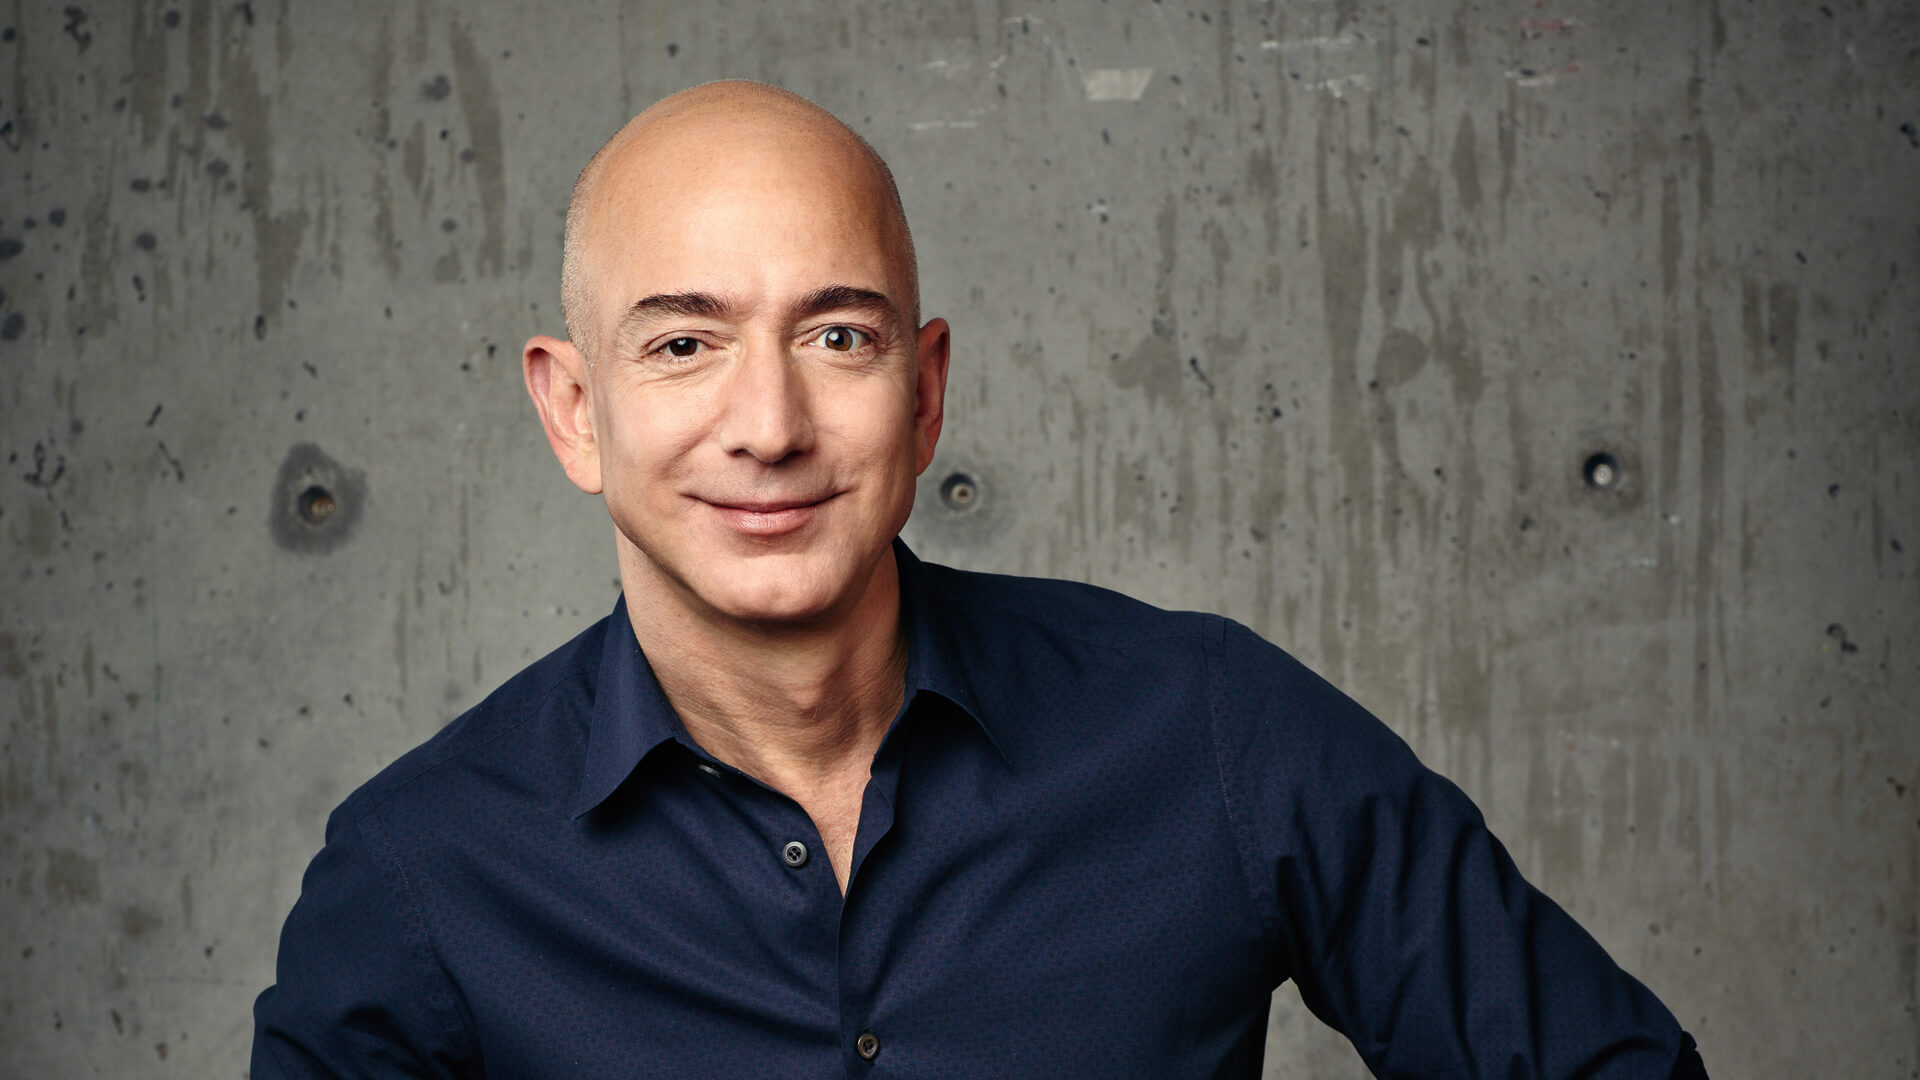 2020 in Review: The Year for Jeff Bezos